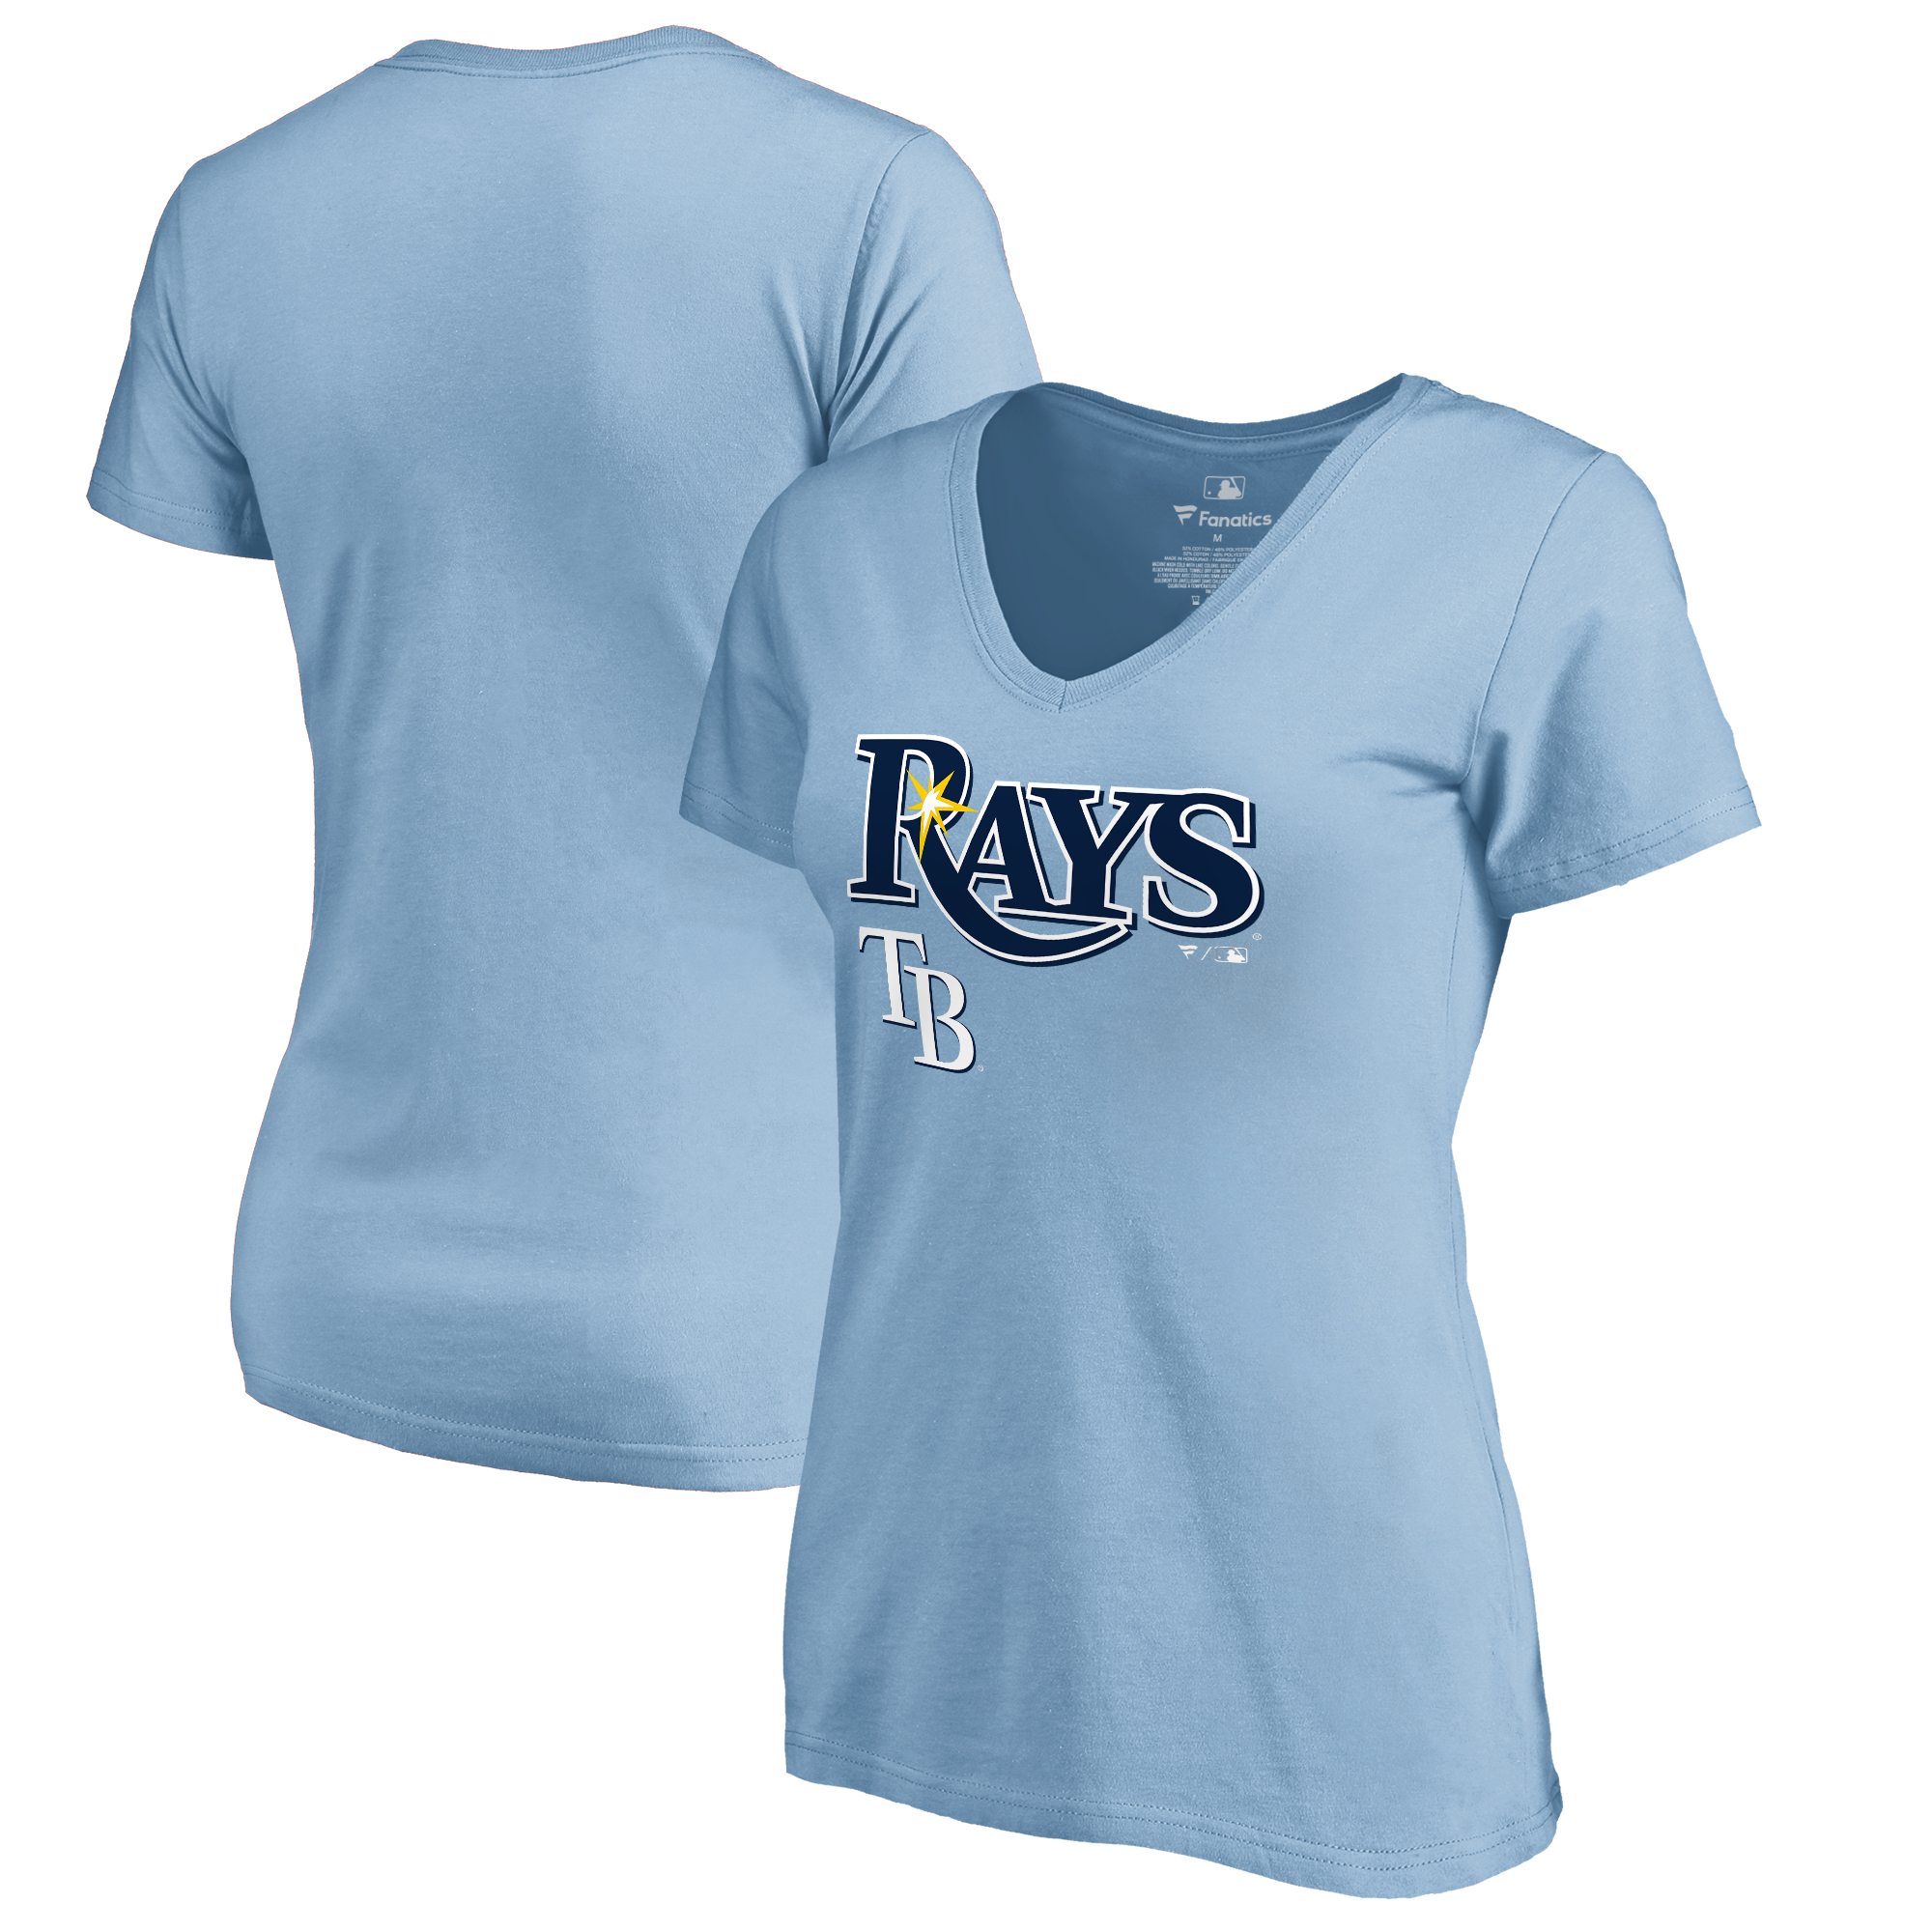 Tampa Bay Rays Fanatics Branded Women's Team Lockup T-Shirt - Light Blue